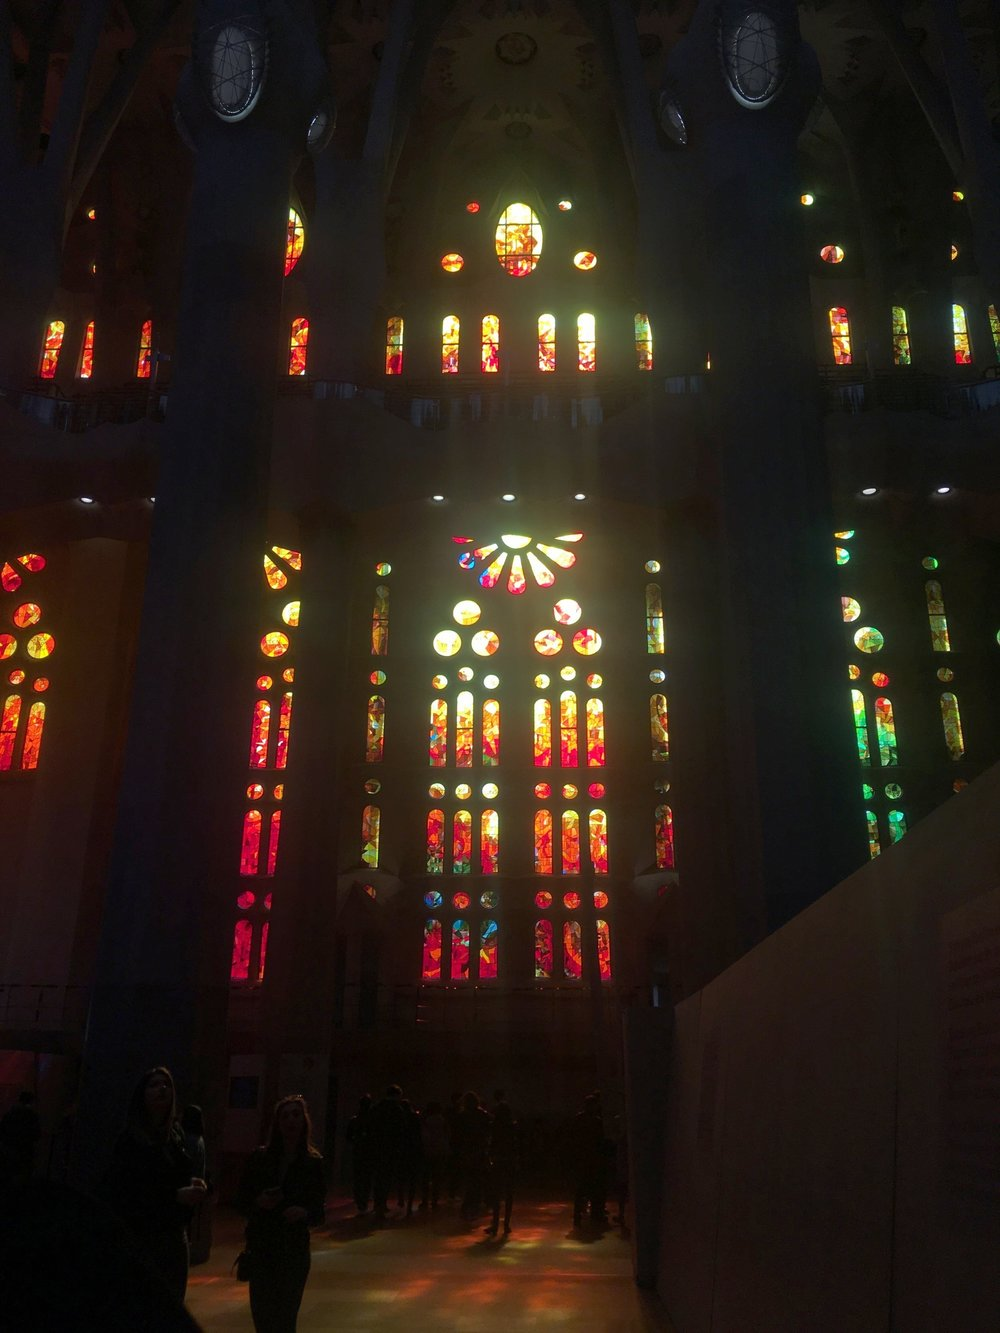 The inside of the Sagrada Familia: Warm, Colorful, and Not at All Intimidating! Photo Credit: Mallory Mrozinski, Spring 2018.